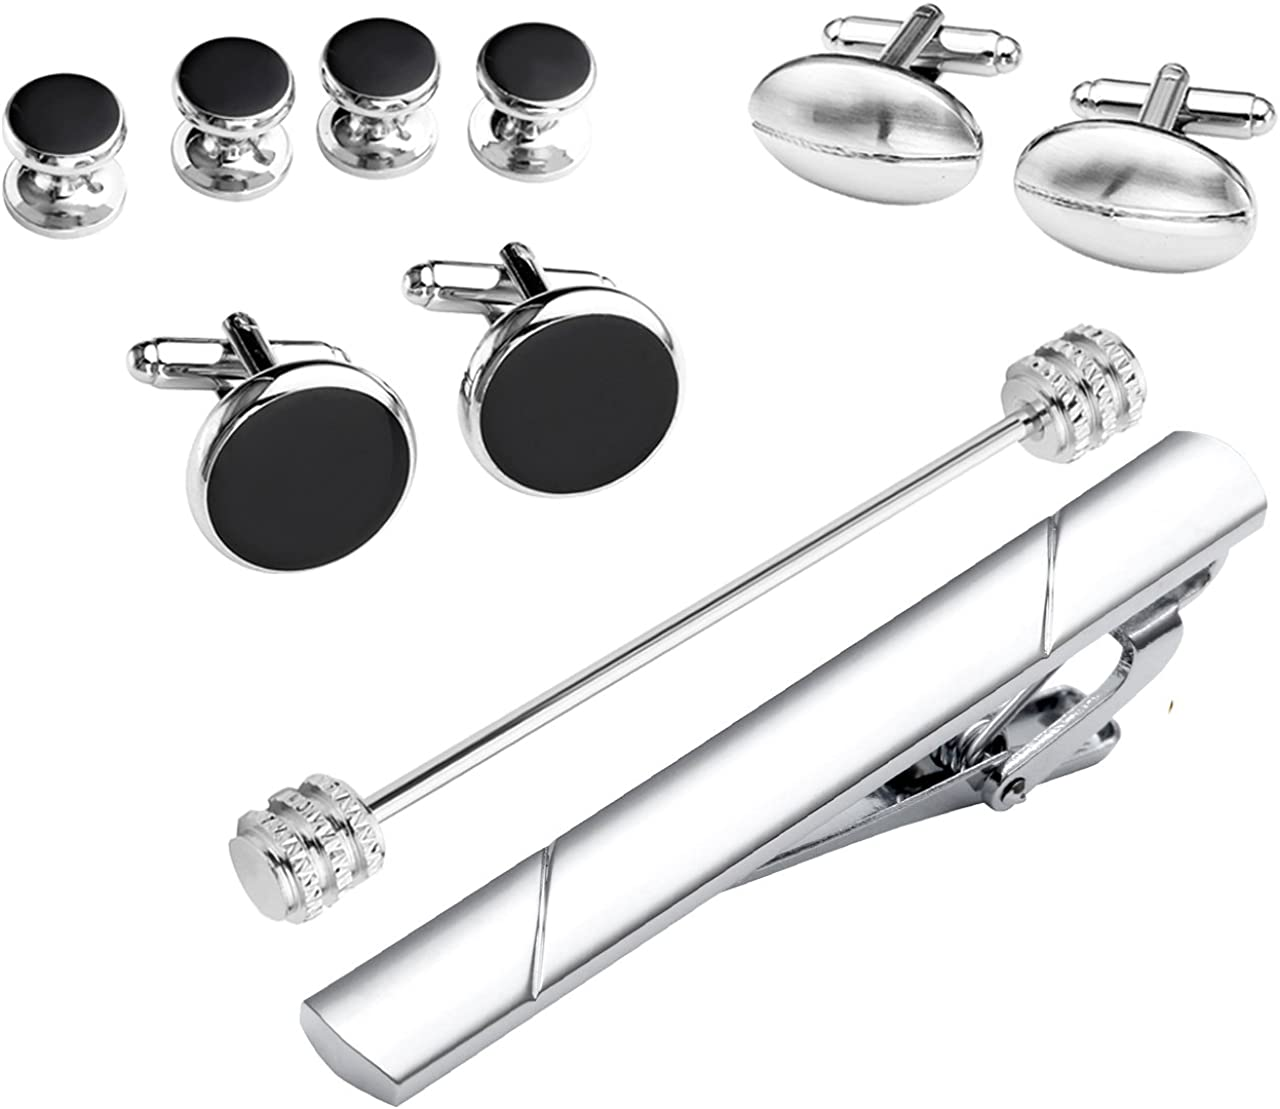 Shirt Studs Tie Clip Jovivi 10pc Mens Stainless Steel Exquisite Cufflinks Collar Tie Pin Bar Set for French Cuff Shirts w//Box